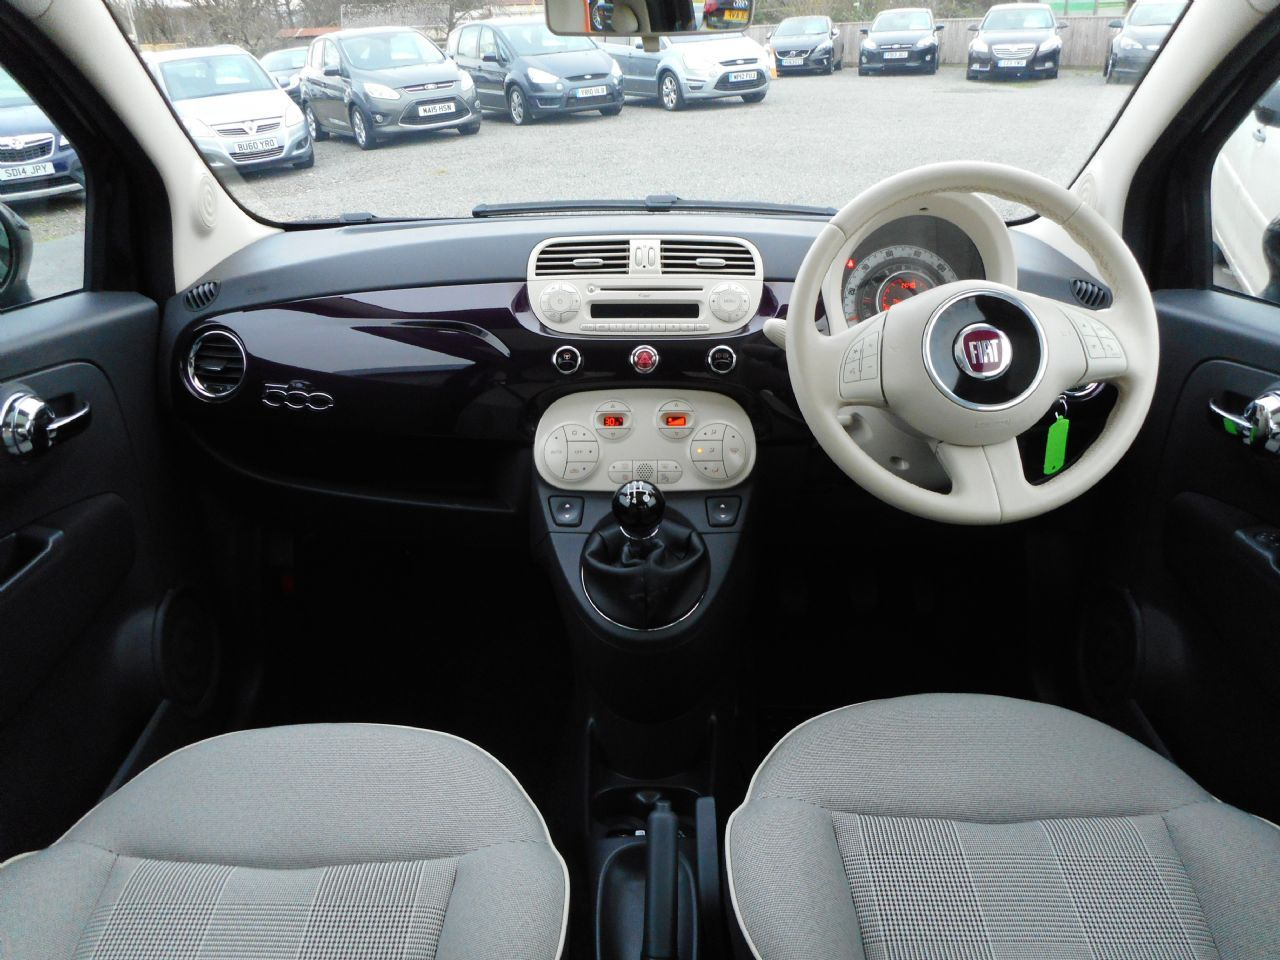 FIAT 500 1.2i Lounge S/S - Picture 8